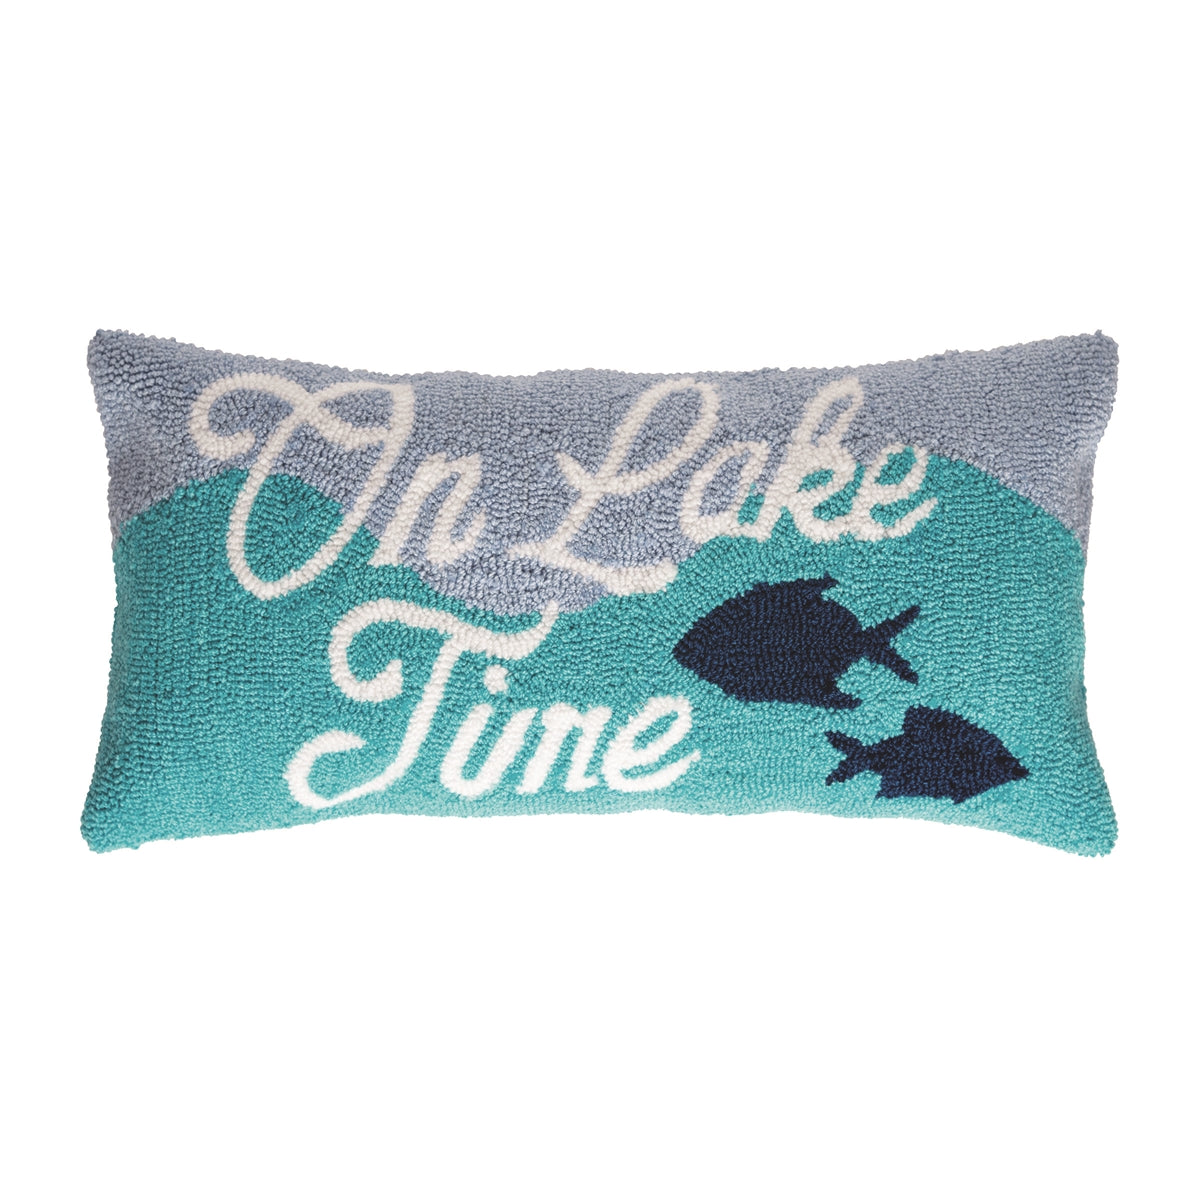 On Lake Time Pillow